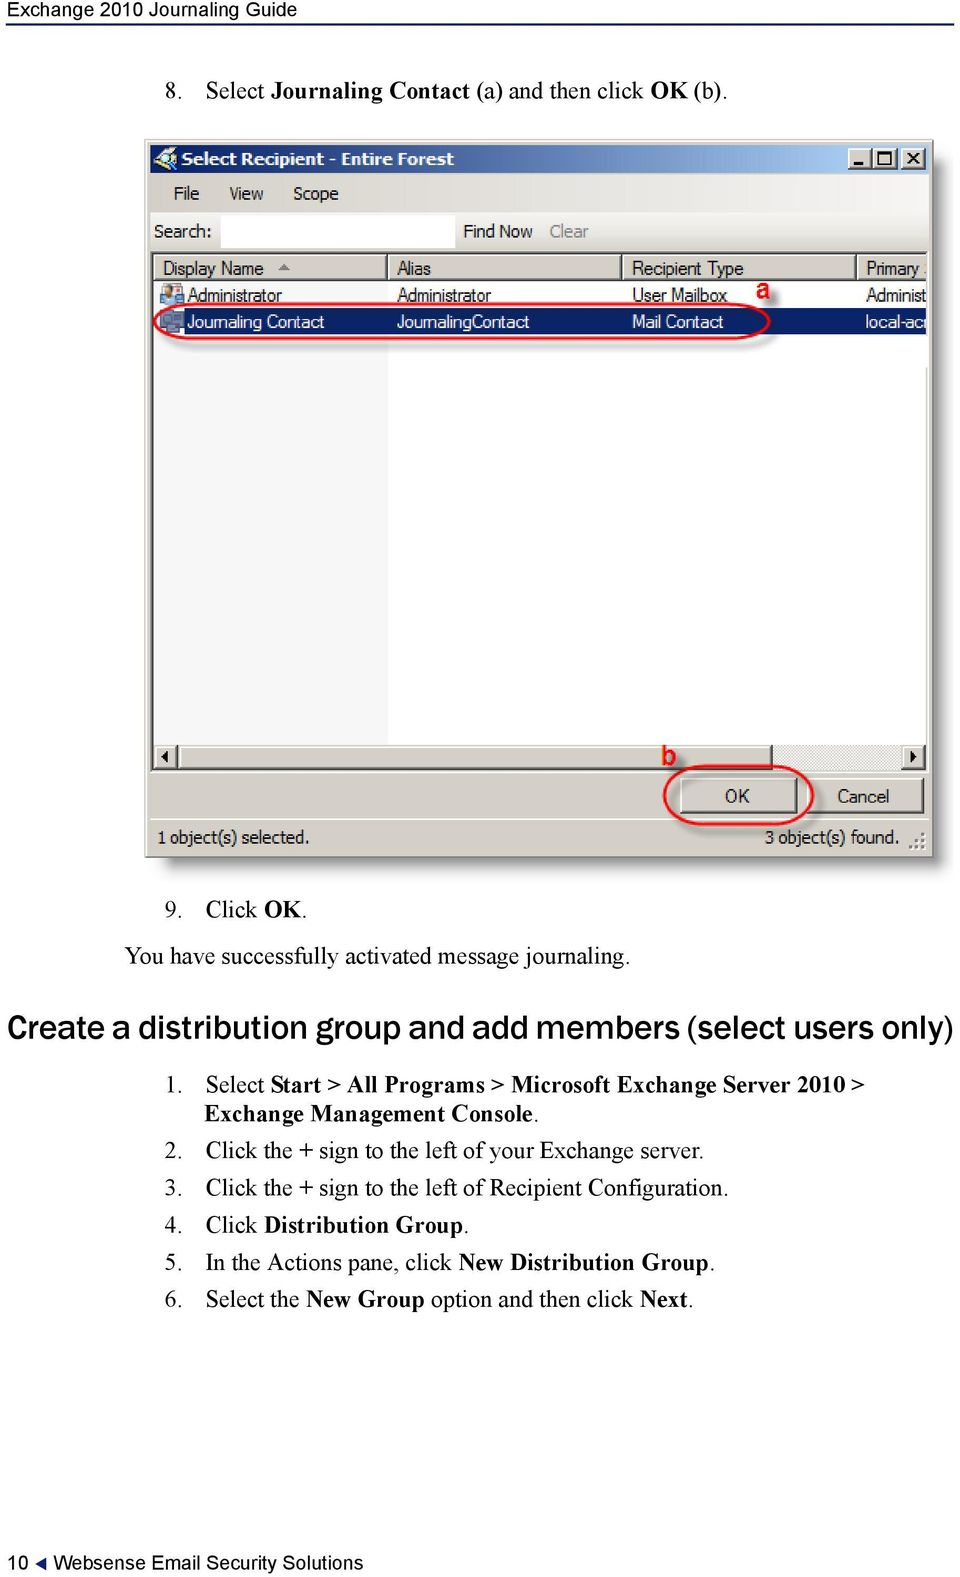 Select Start > All Programs > Microsoft Exchange Server 2010 > Exchange Management Console. 2. Click the + sign to the left of your Exchange server.